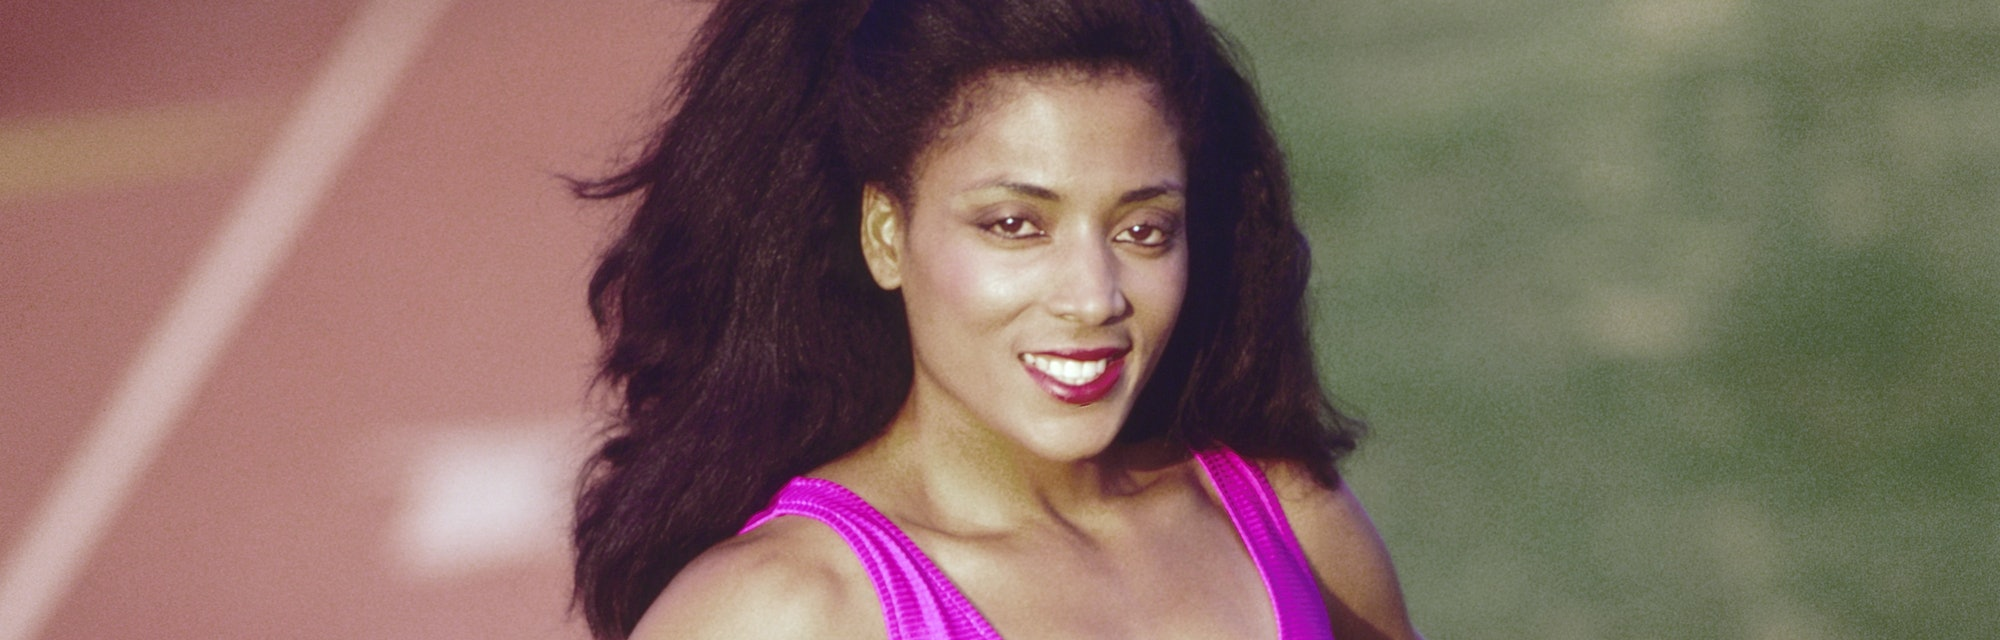 LOS ANGELES - DECEMBER 1982: Florence Griffith Joyner poses for a portrait in Los Angeles, Californi...